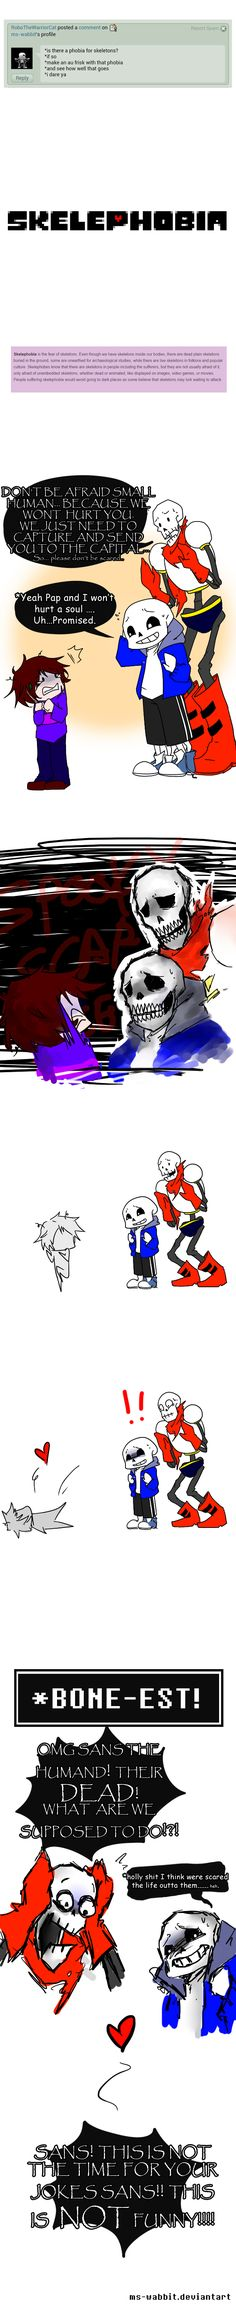 sans and papyrus - skelephobia by ms-wabbit on DeviantArt